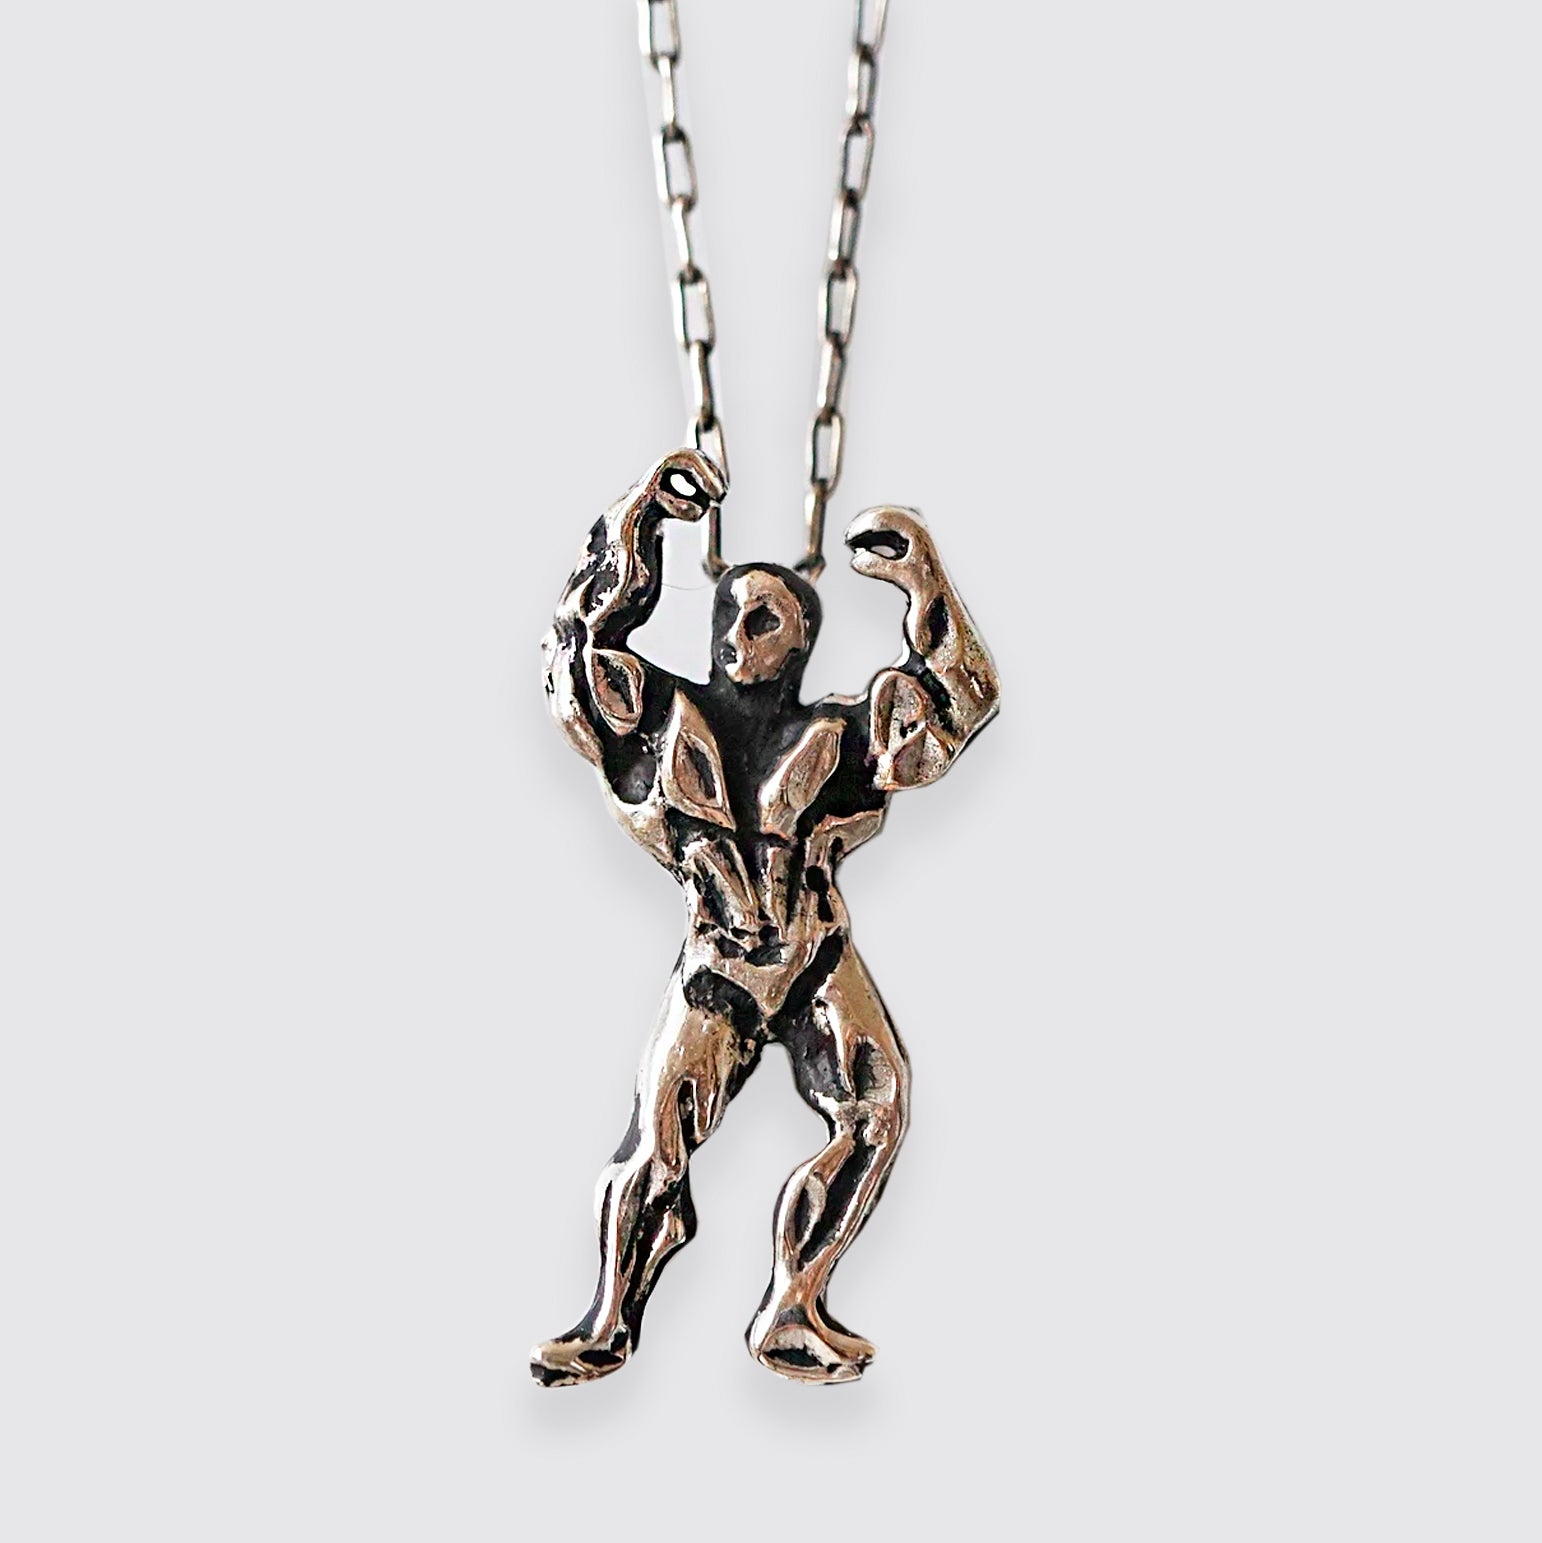 Olympia Body Builder Pendant